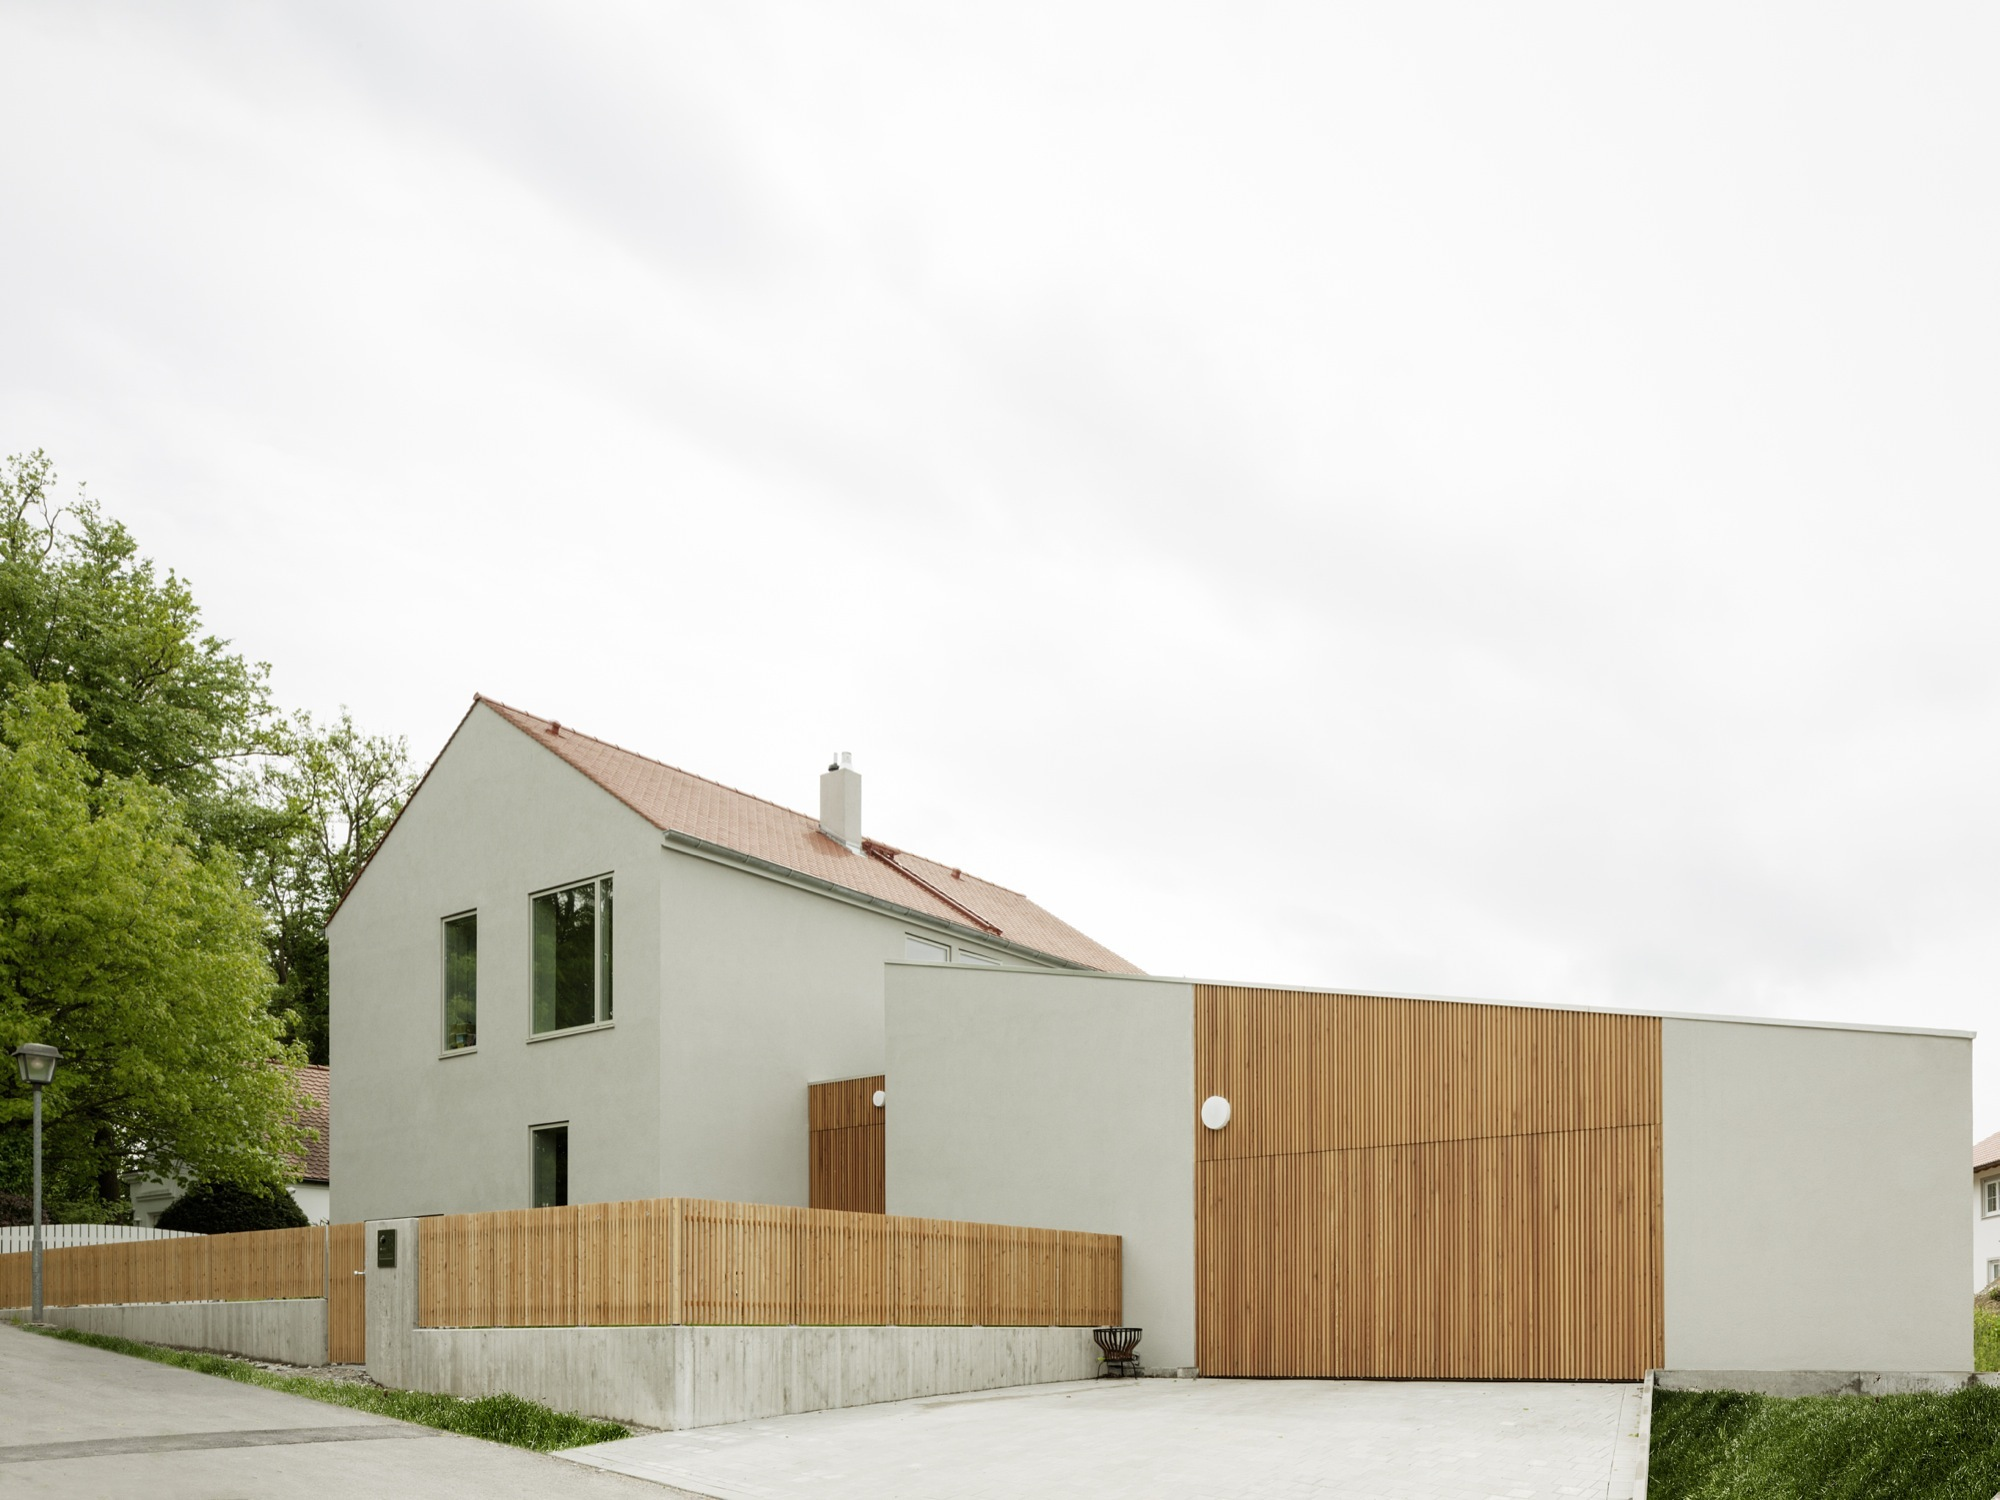 Detached House Cama A Archdaily